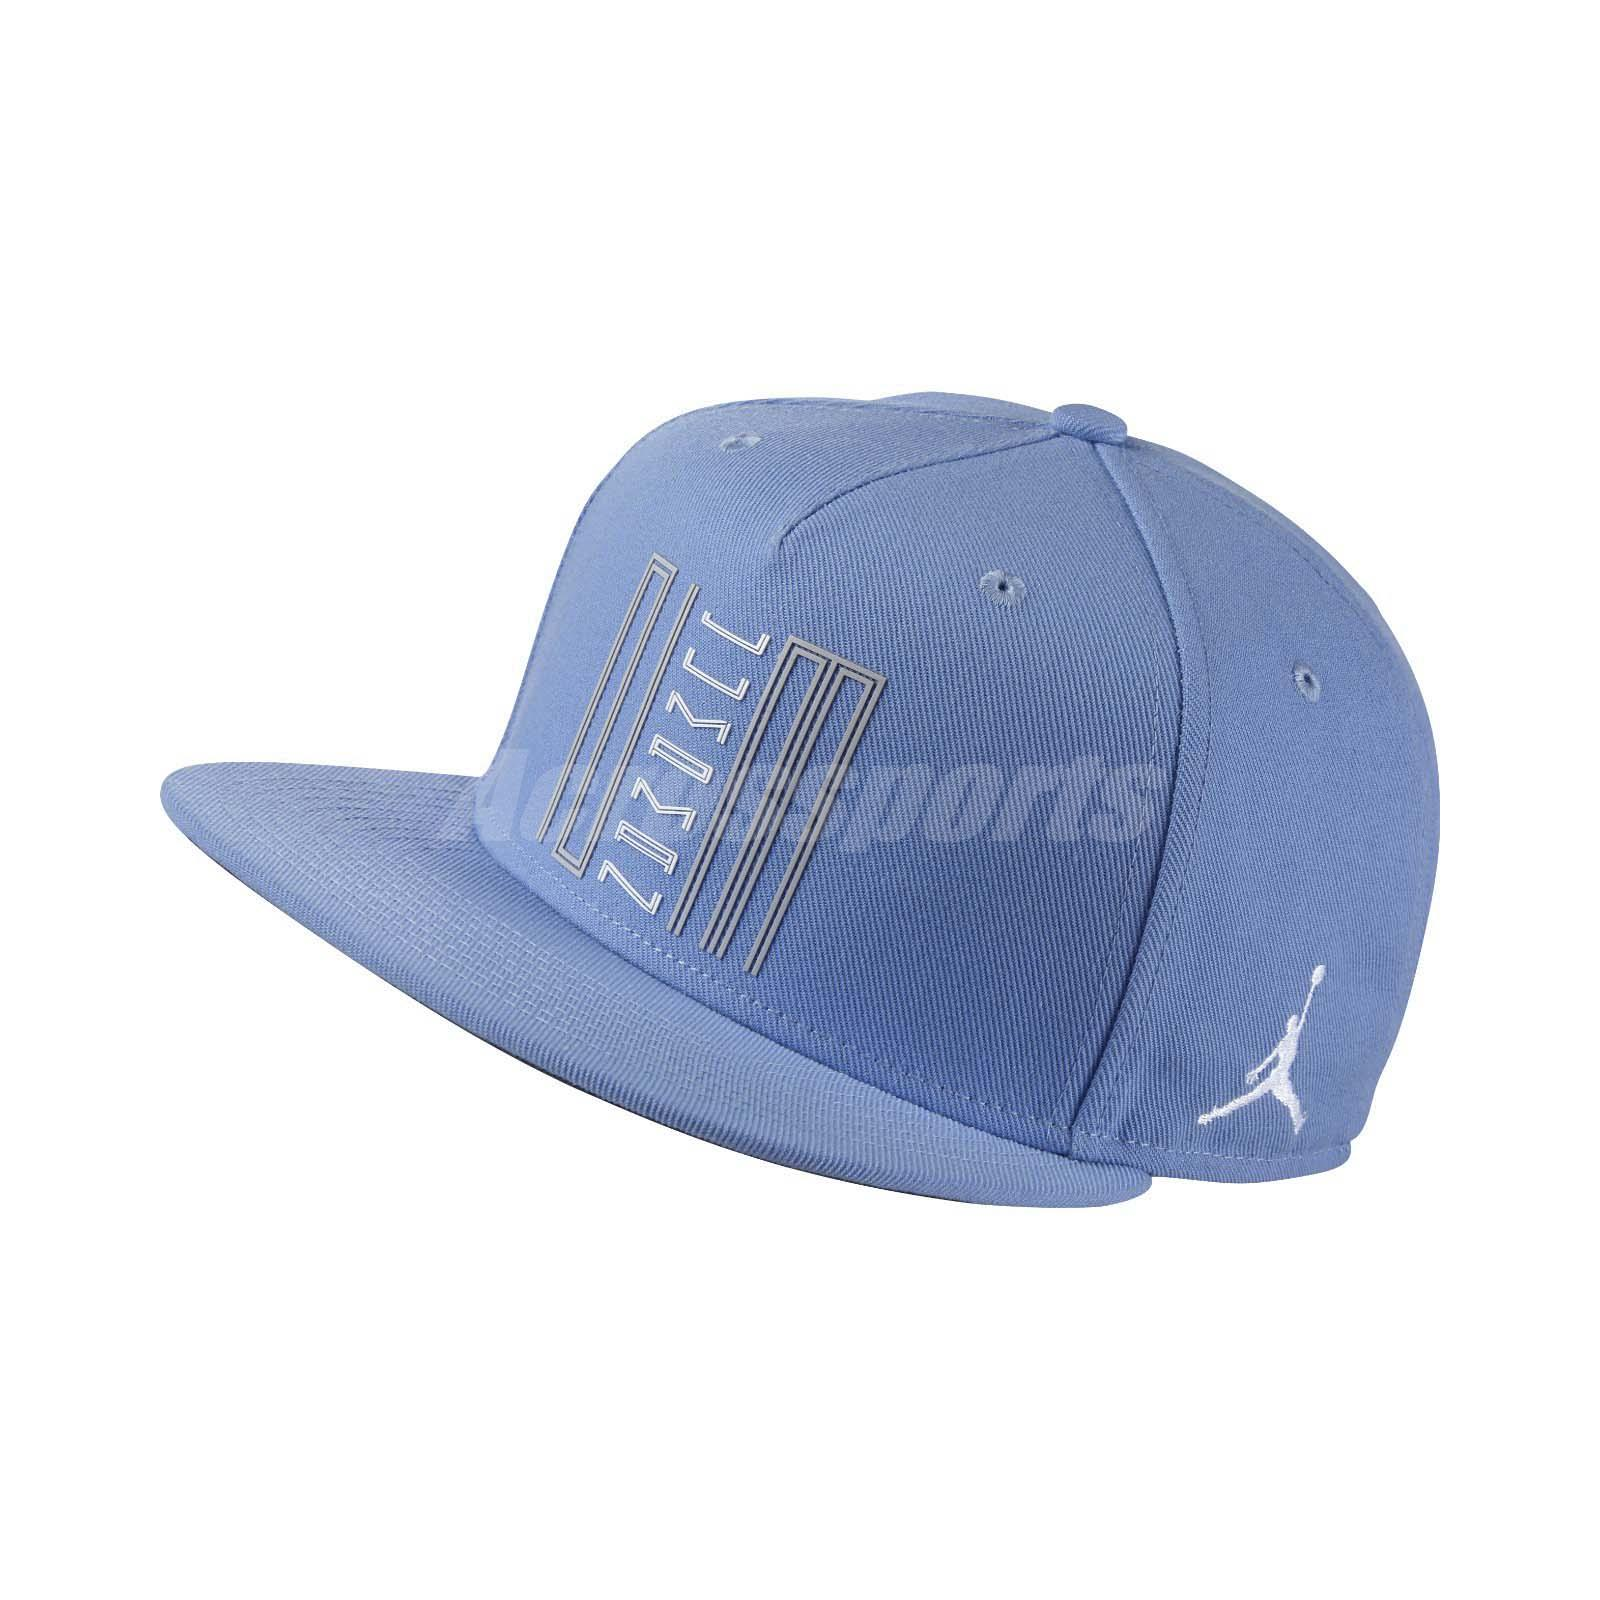 2e3052909da ... new zealand nike aj11 low unc columbia blue men snapback cap adjustable  hat 843072 412 f537d